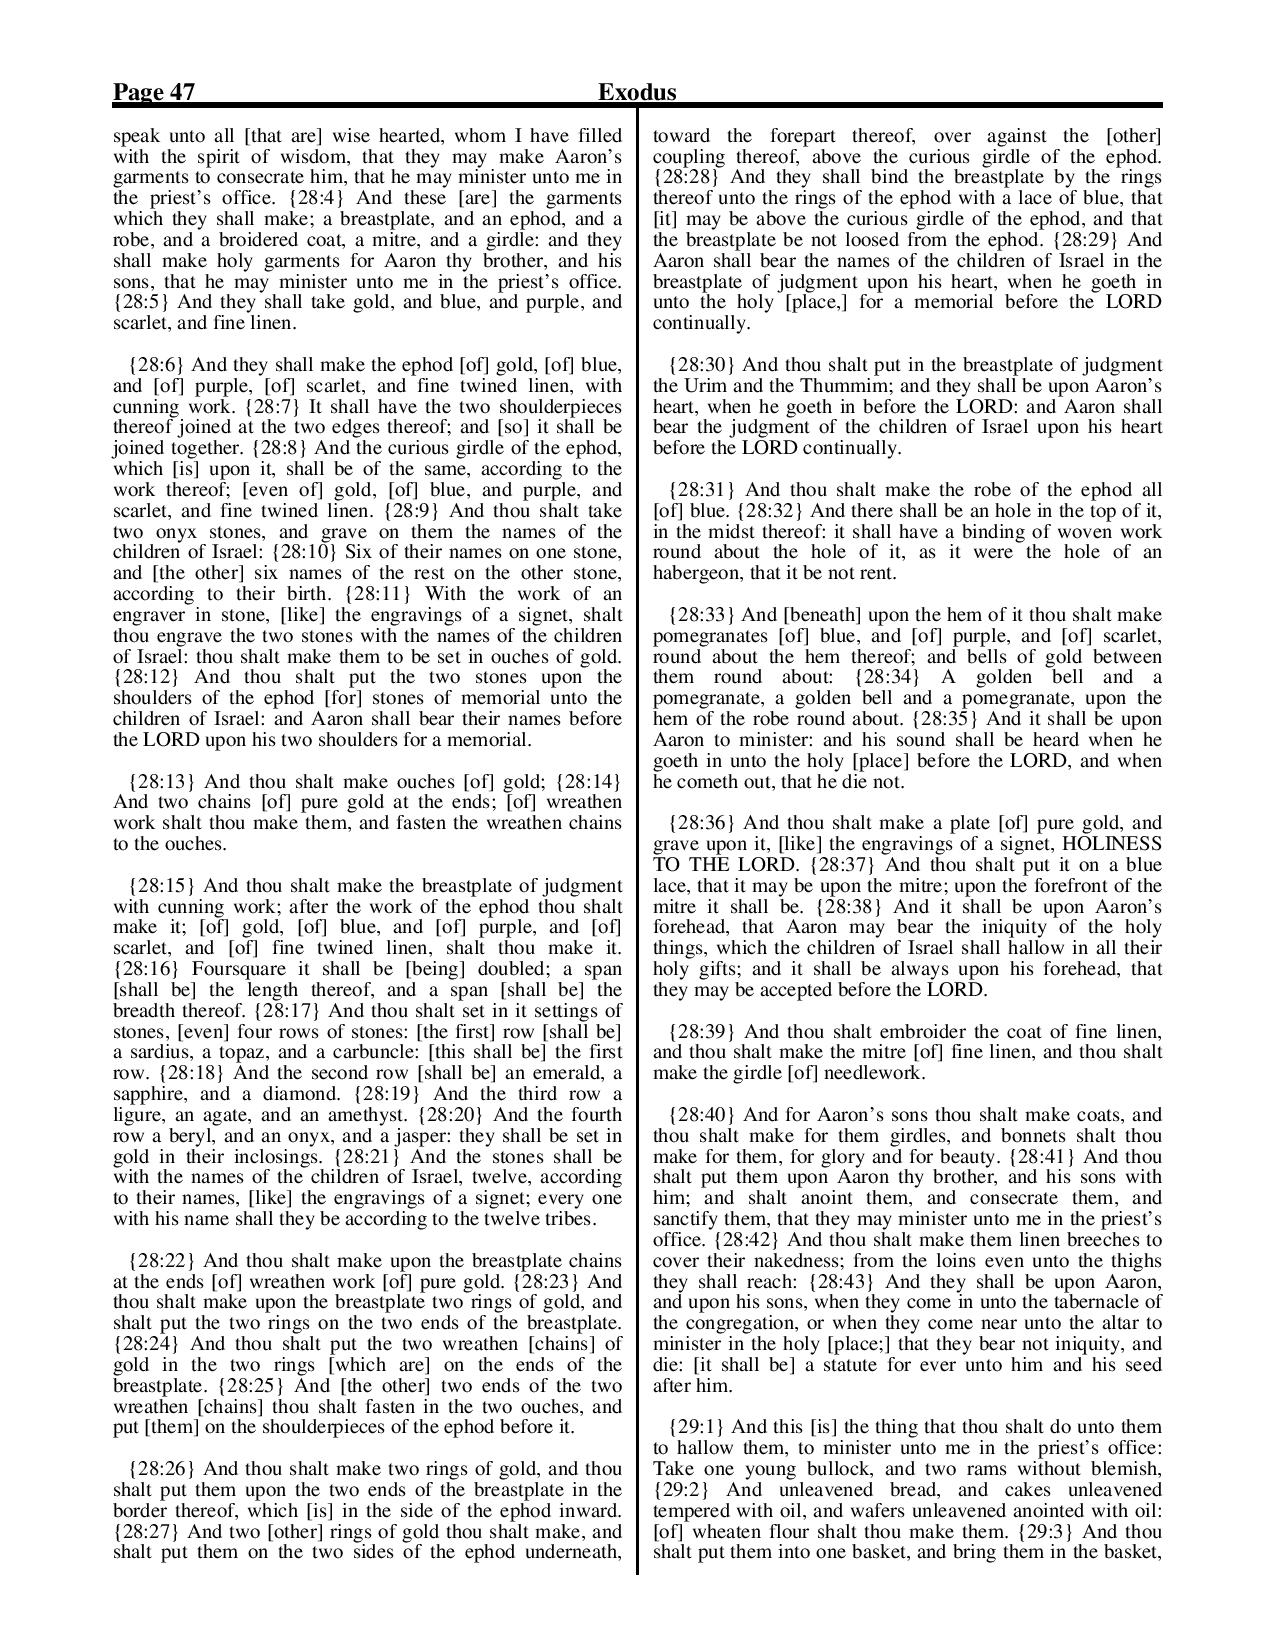 King-James-Bible-KJV-Bible-PDF-page-068